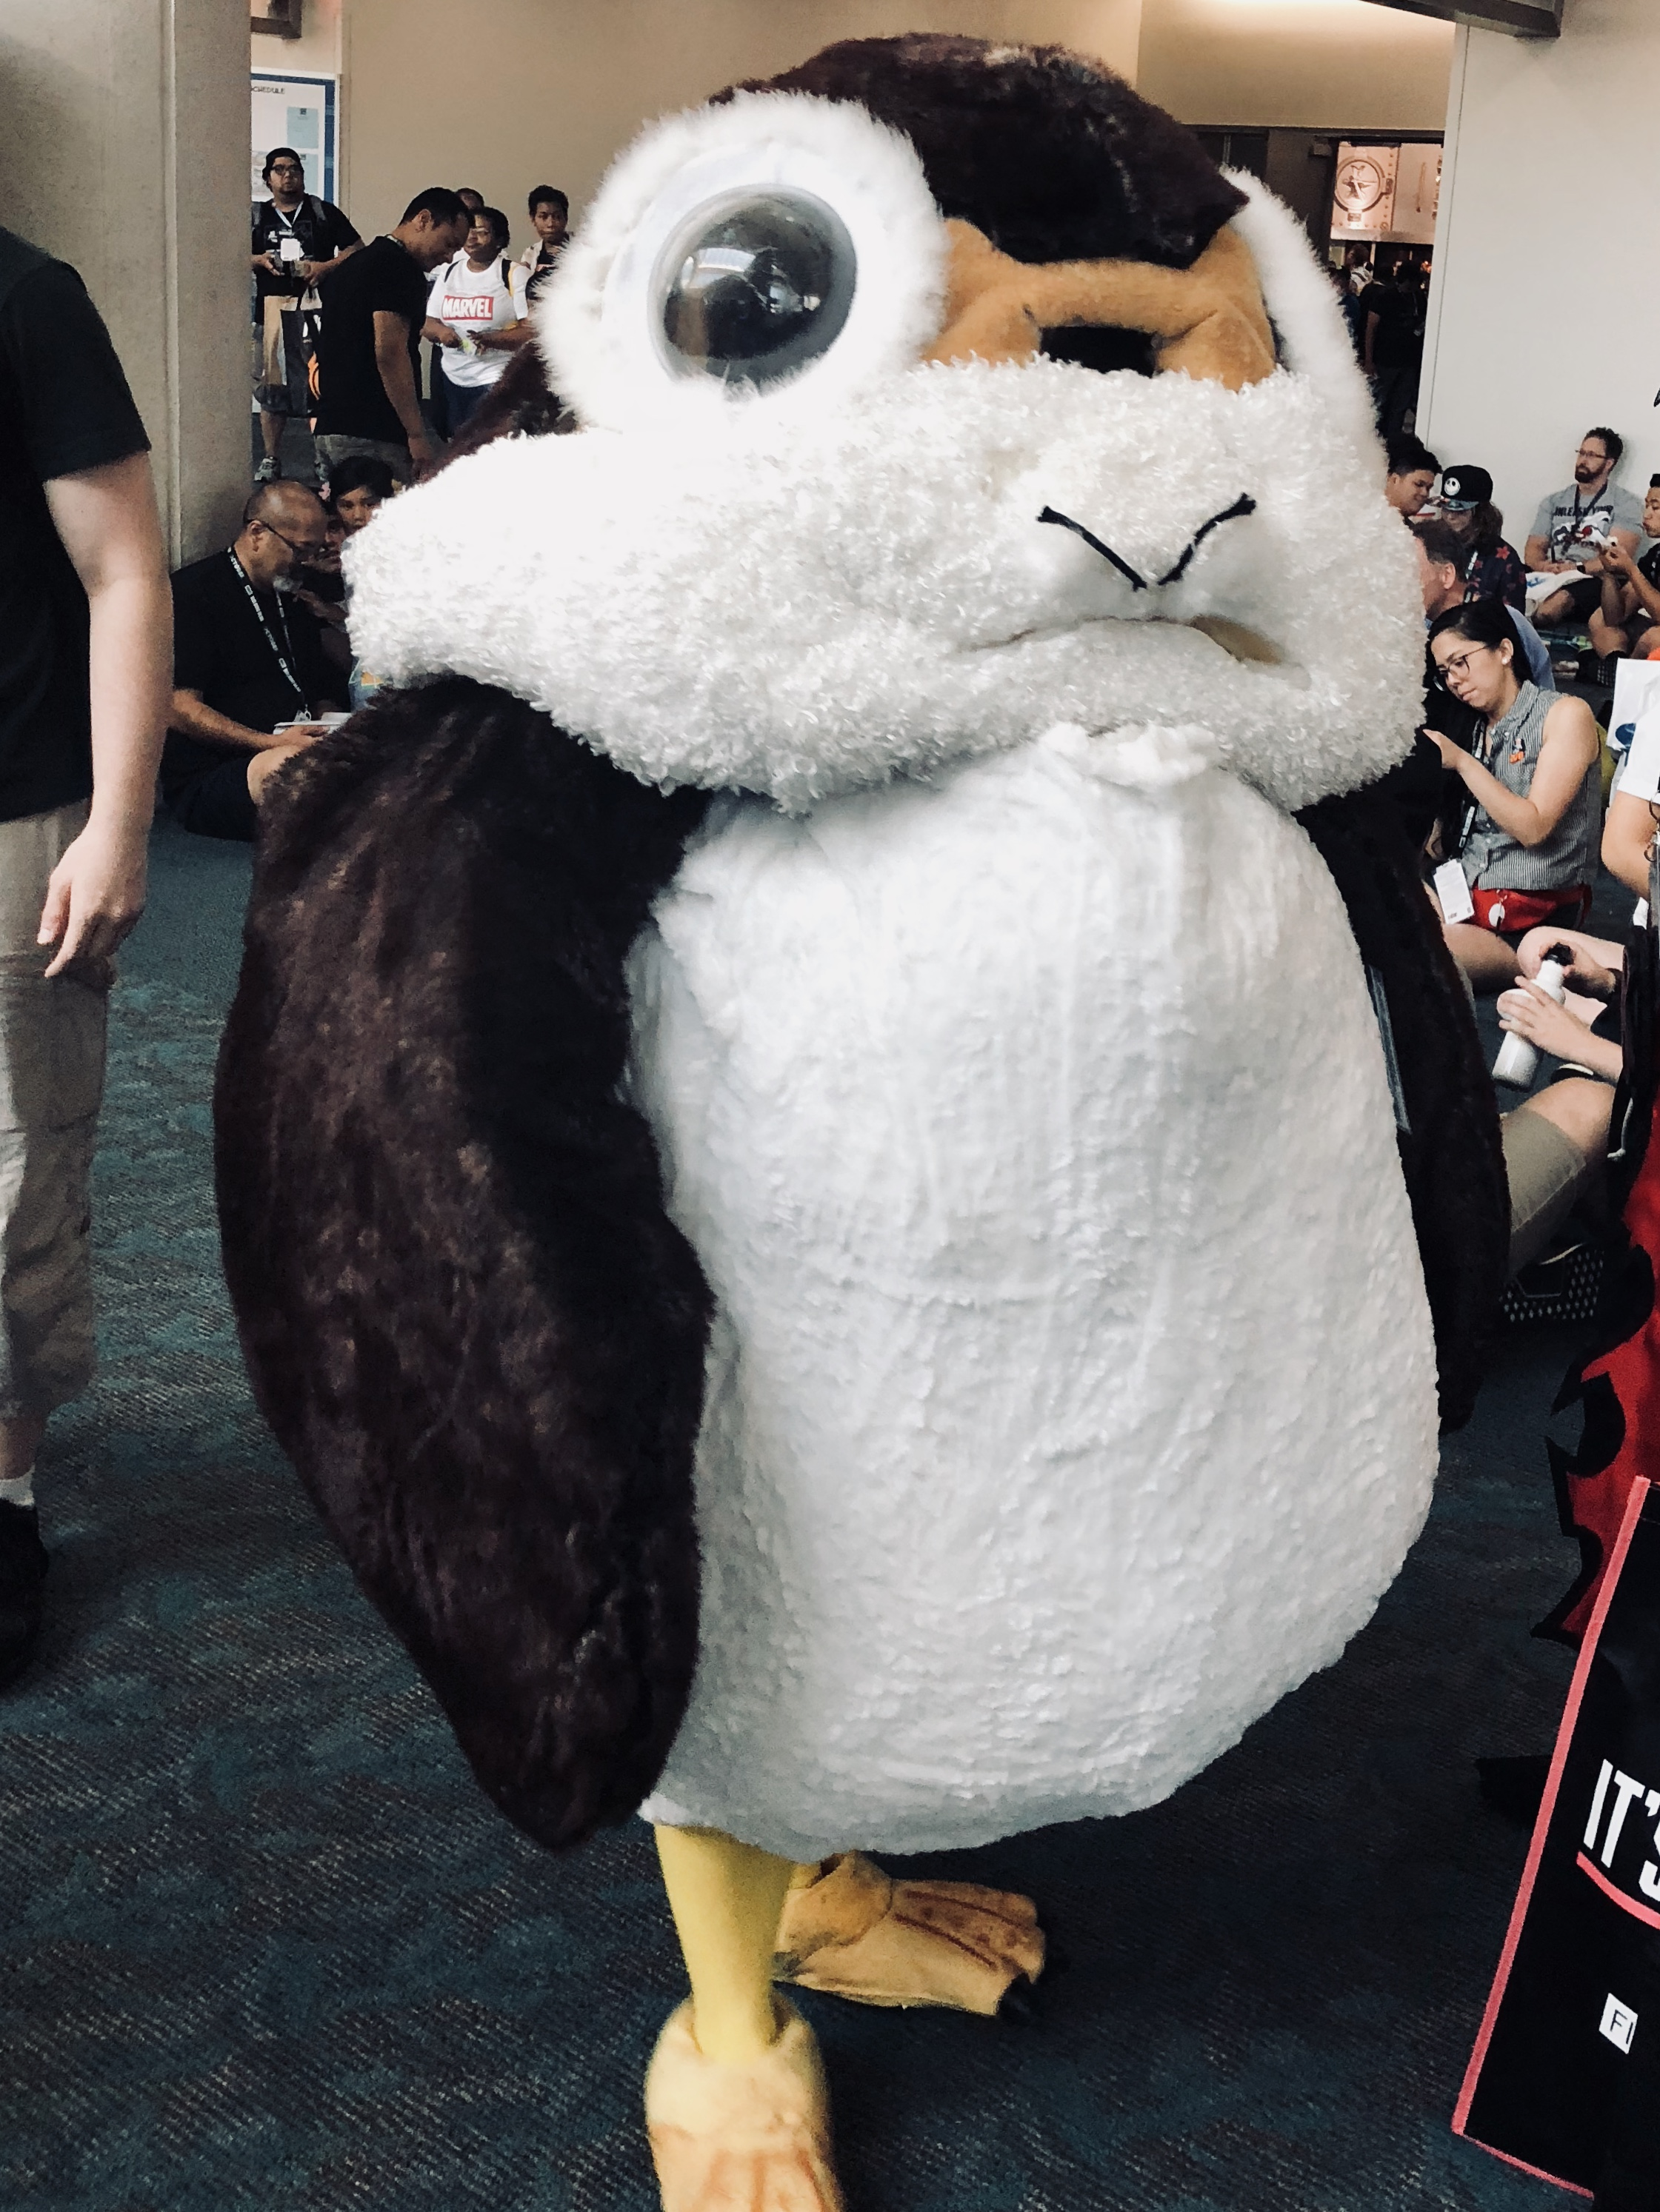 I thought porgs were small and cute…